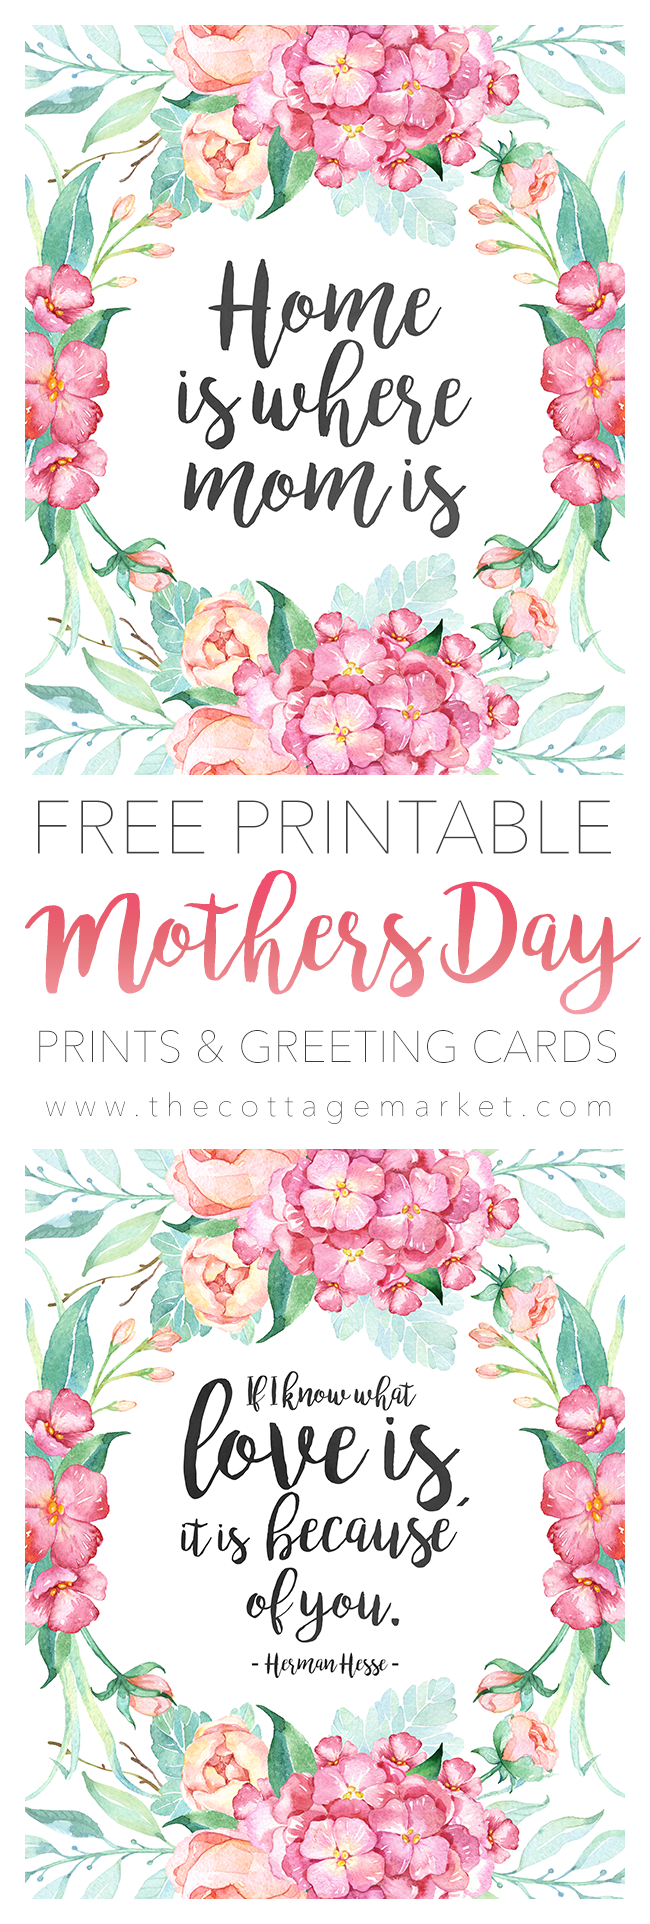 These sweet Mother's Day printables are free and heartwarming.